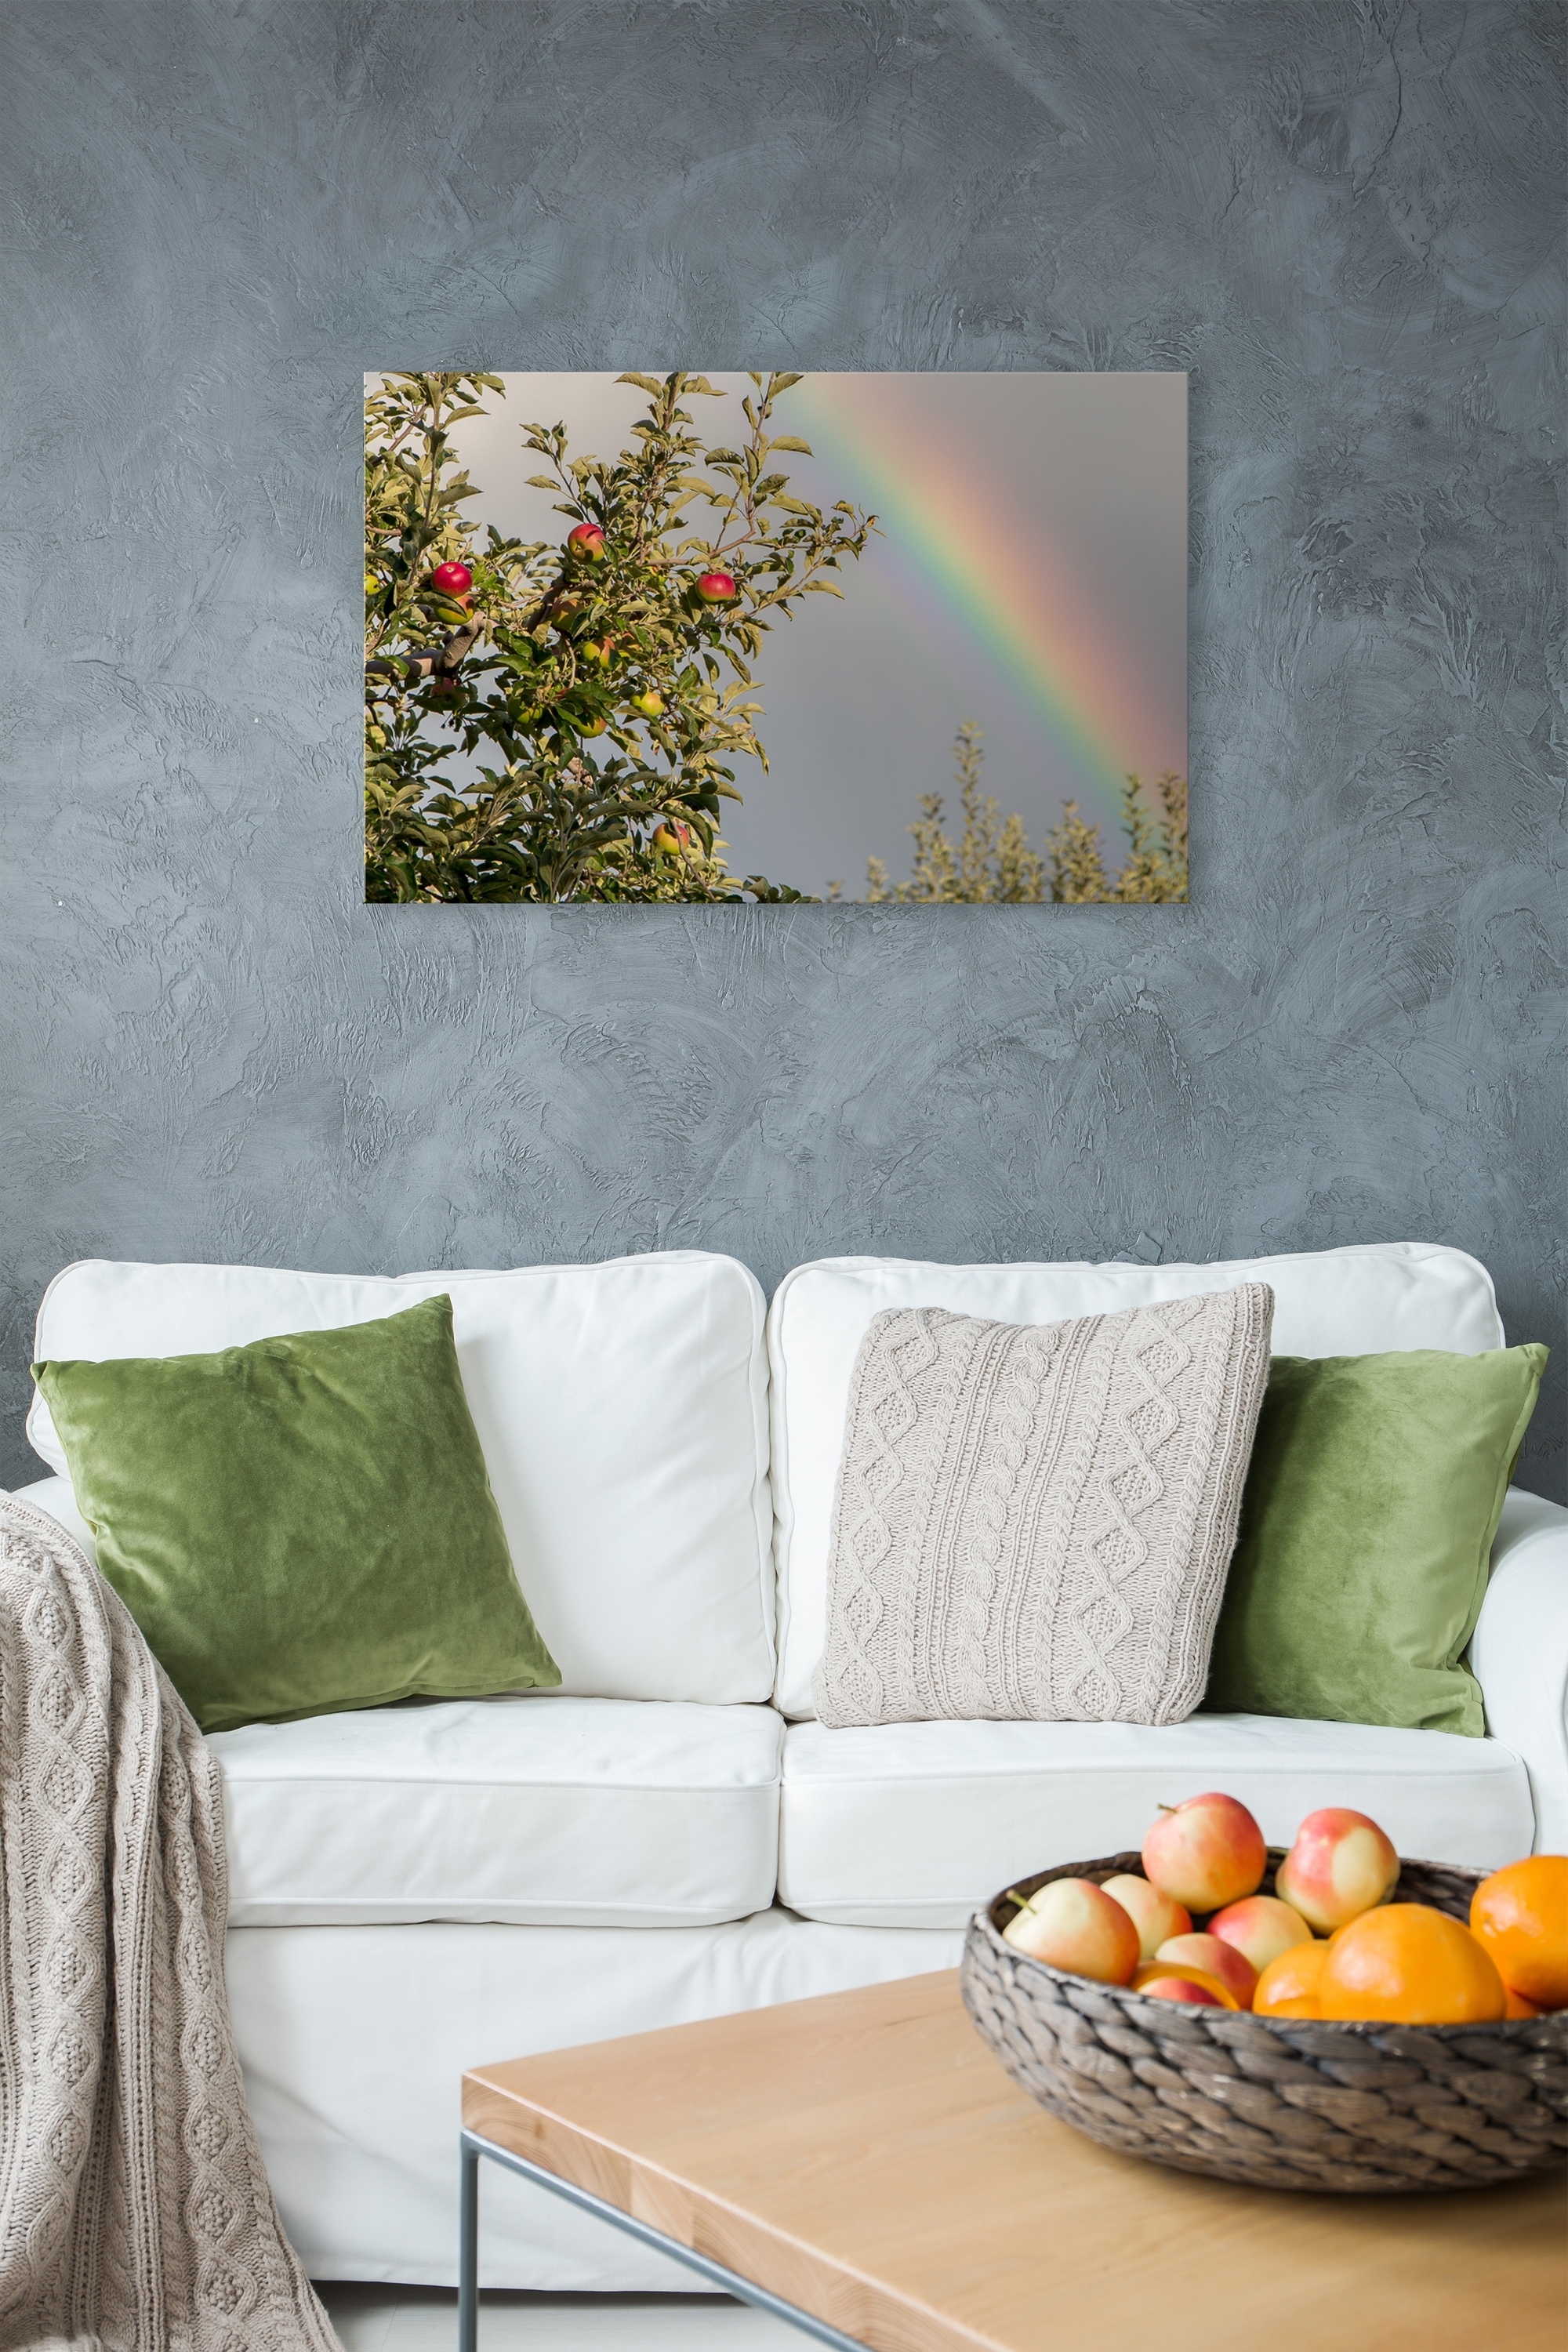 Well Liked Orchard Rainbow – Rogue Aurora Photography With Nature Wall Art (View 8 of 15)